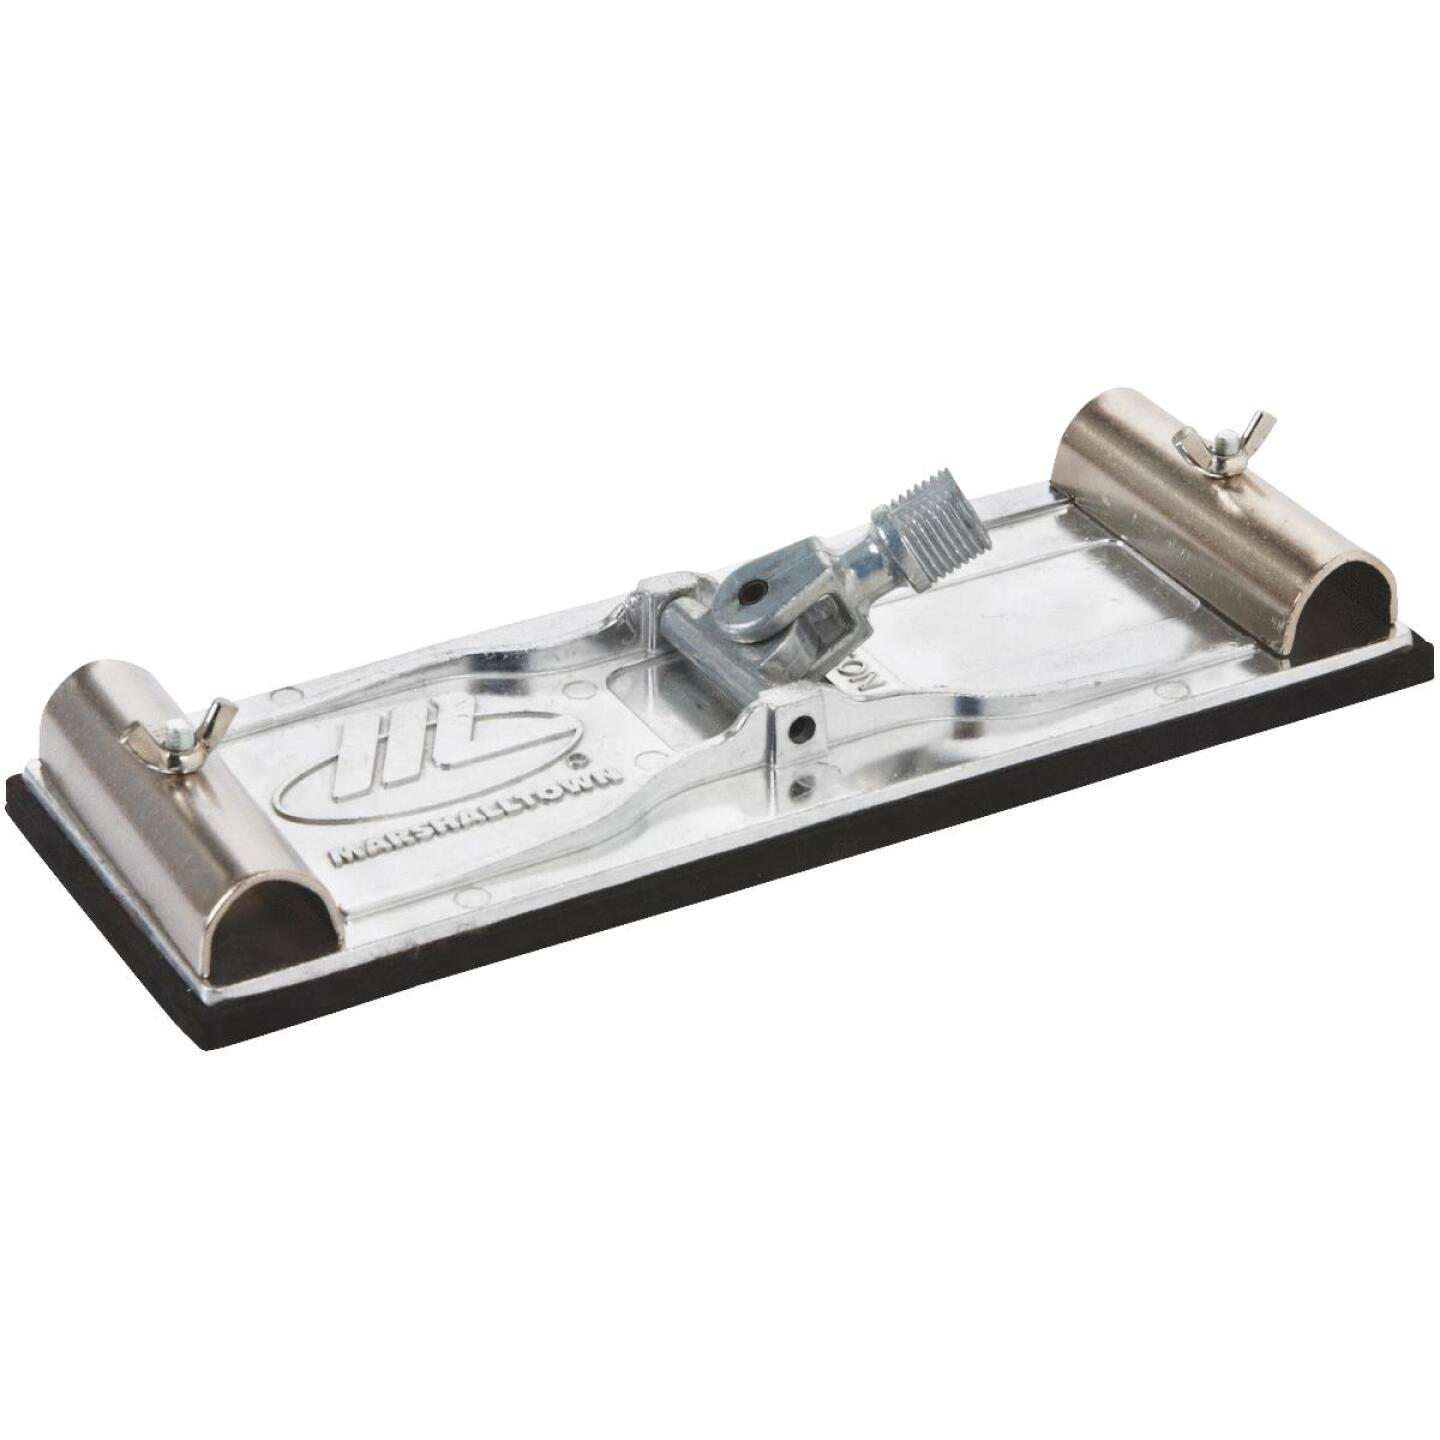 Marshalltown Die-Cast Aluminum 9-1/2 In. x 3-1/4 In. Pole Sander Head Image 1